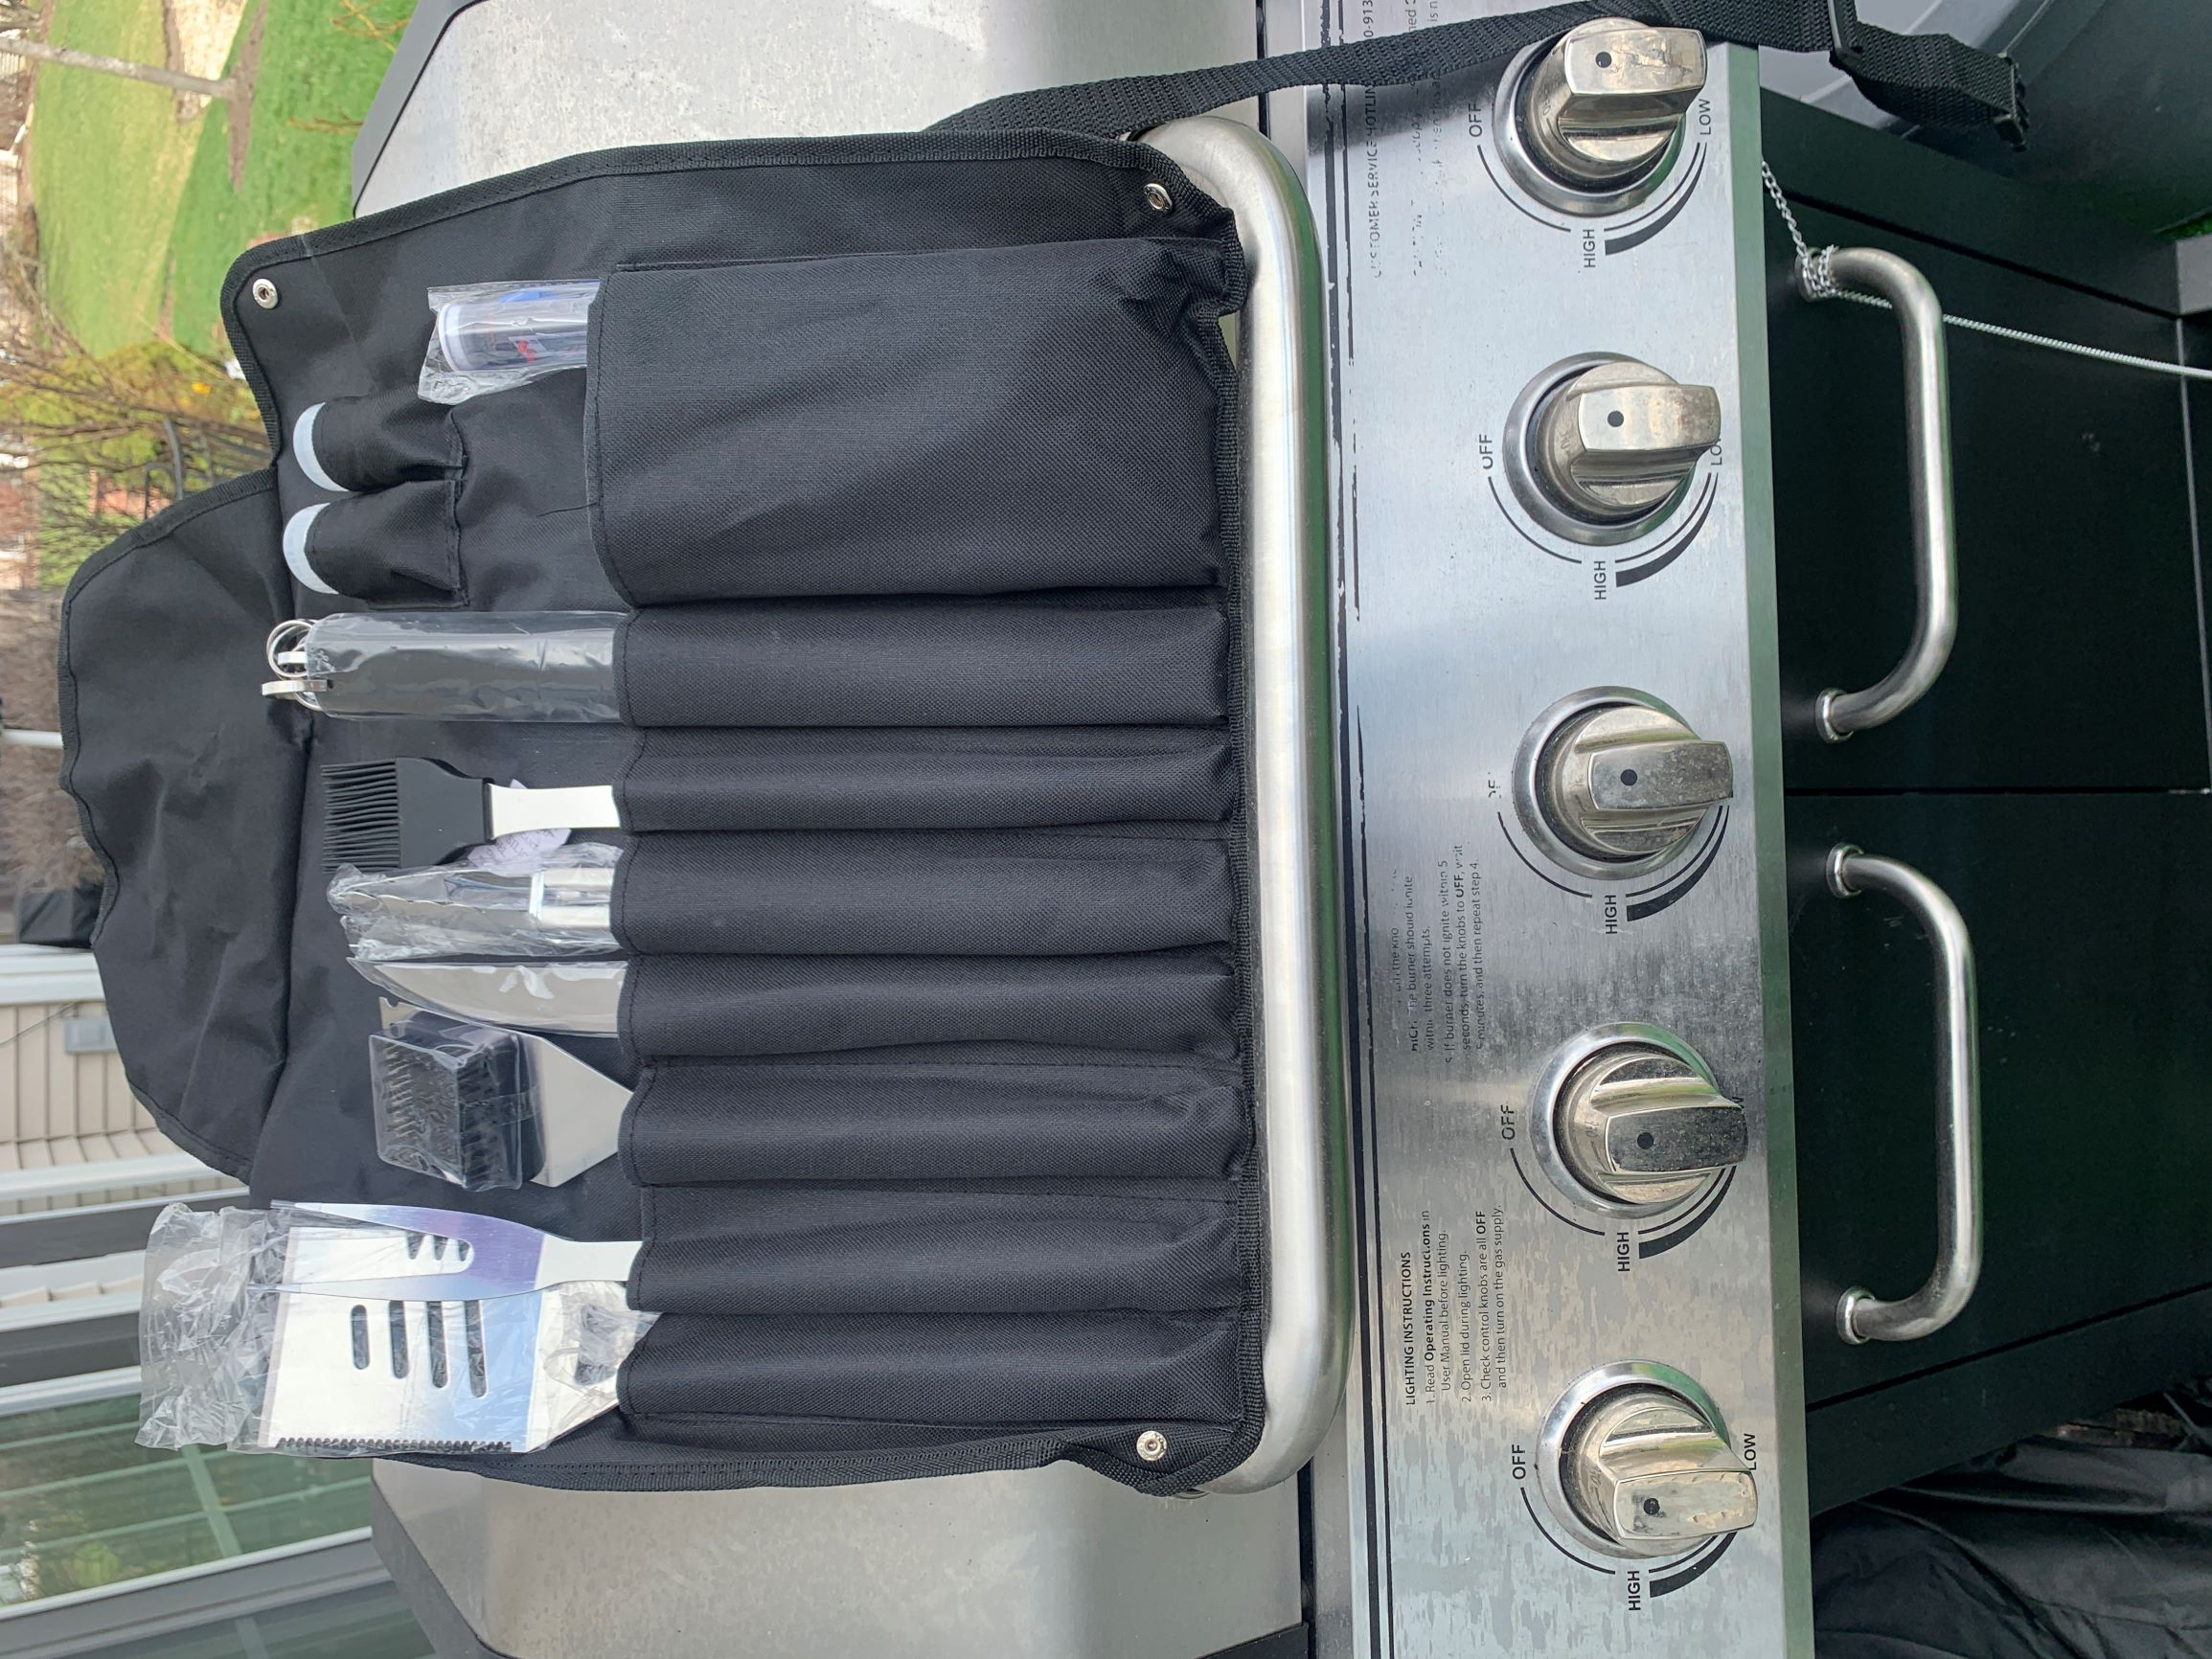 Nice quality BBQ tools and neat storage